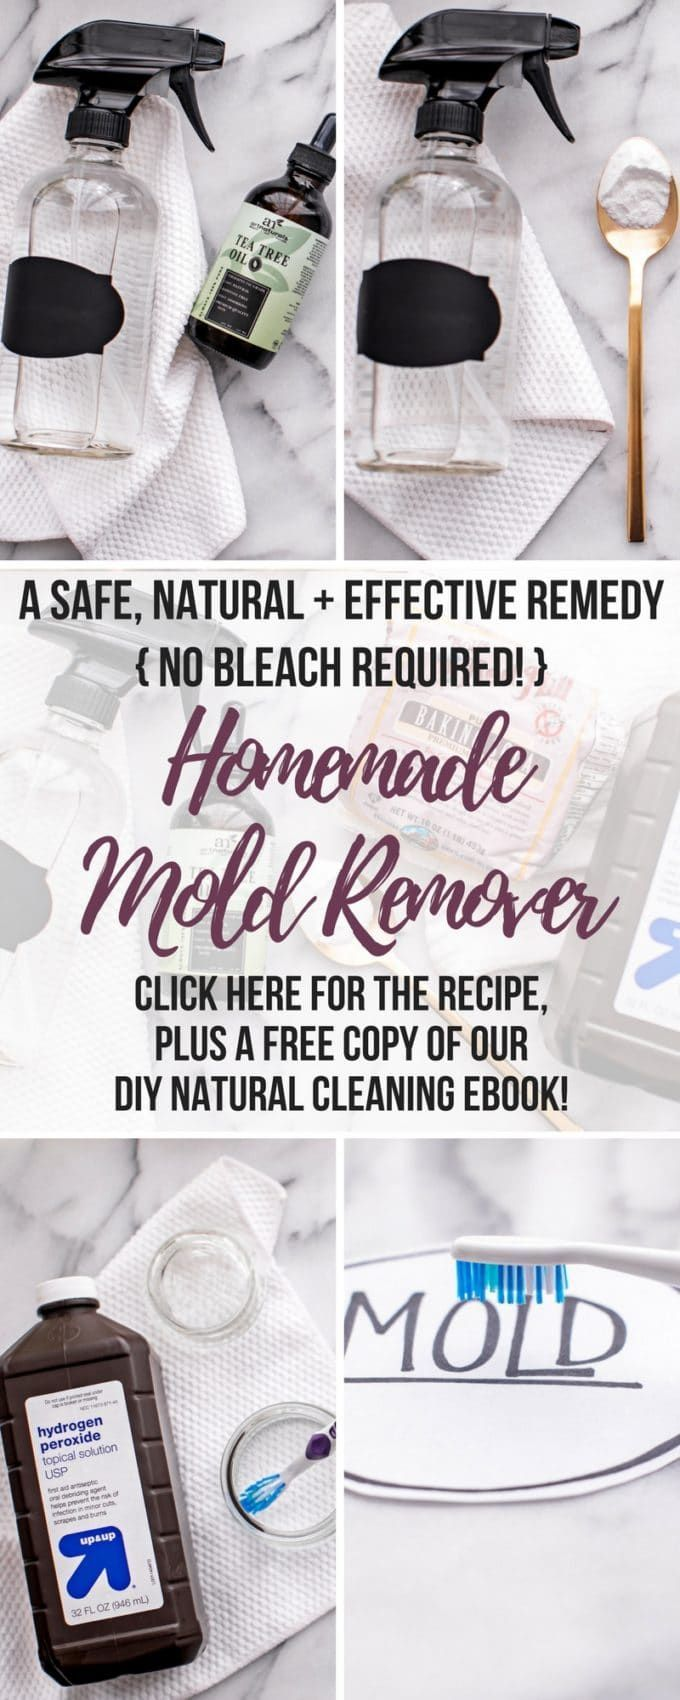 Wondering how to get rid of mold naturally? Whether you have black mold in your shower or basement, on your walls, windows, ceiling or baseboards, this DIY Mold Remover is a safe and natural black mold removal cleaner that will eliminate mold health risks and symptoms without toxic bleach.